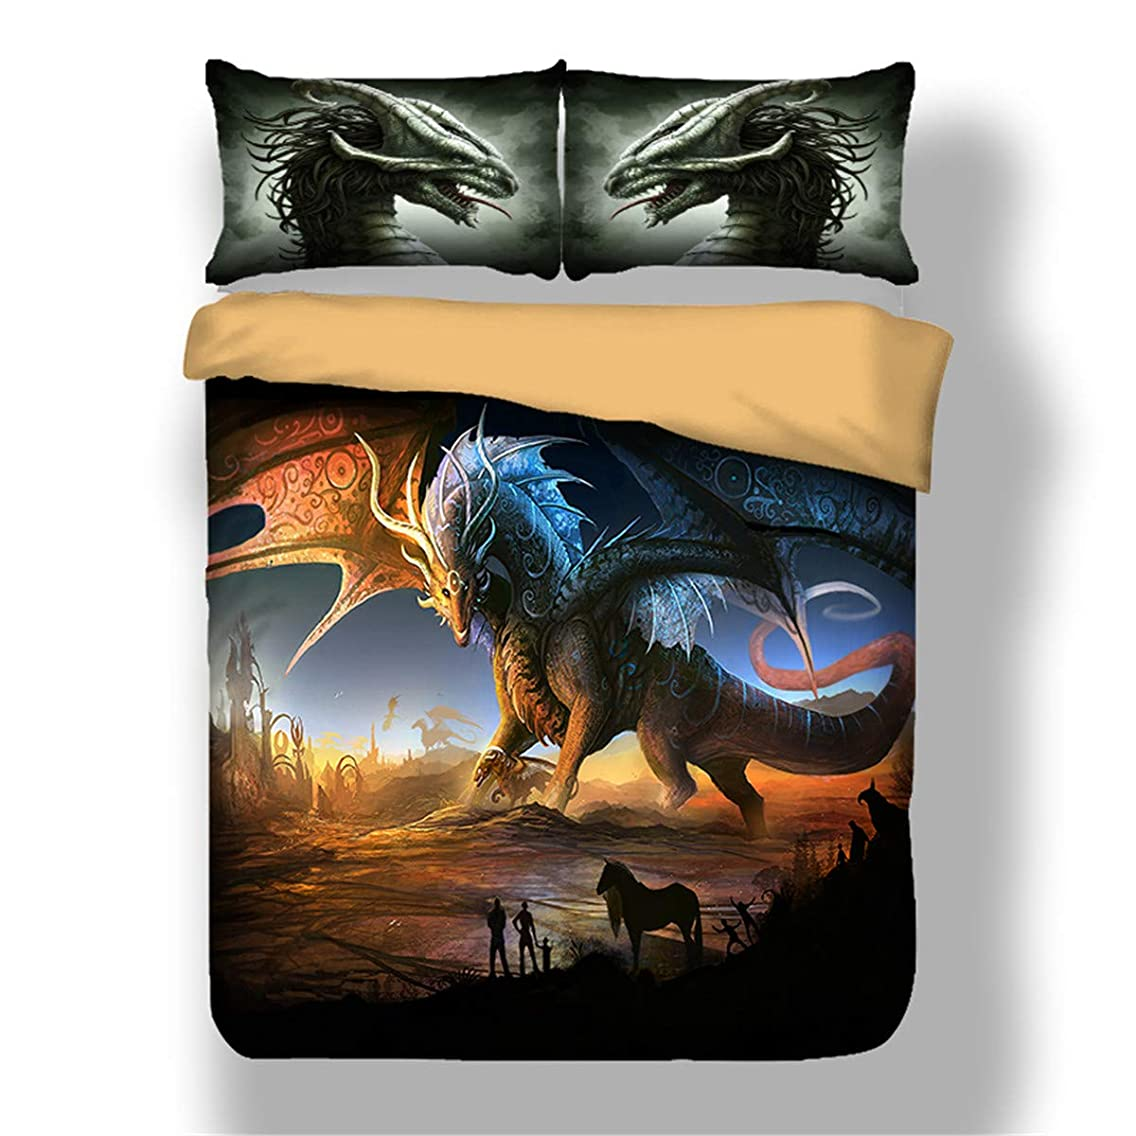 Guidear 3D Printed Dragon Beding Set for Kids Children Cartoon Dragon with Wings Duvet Cover with 2 Pillowcases Anti-Allergic Microfiber Comforter Cover Queen Size 90